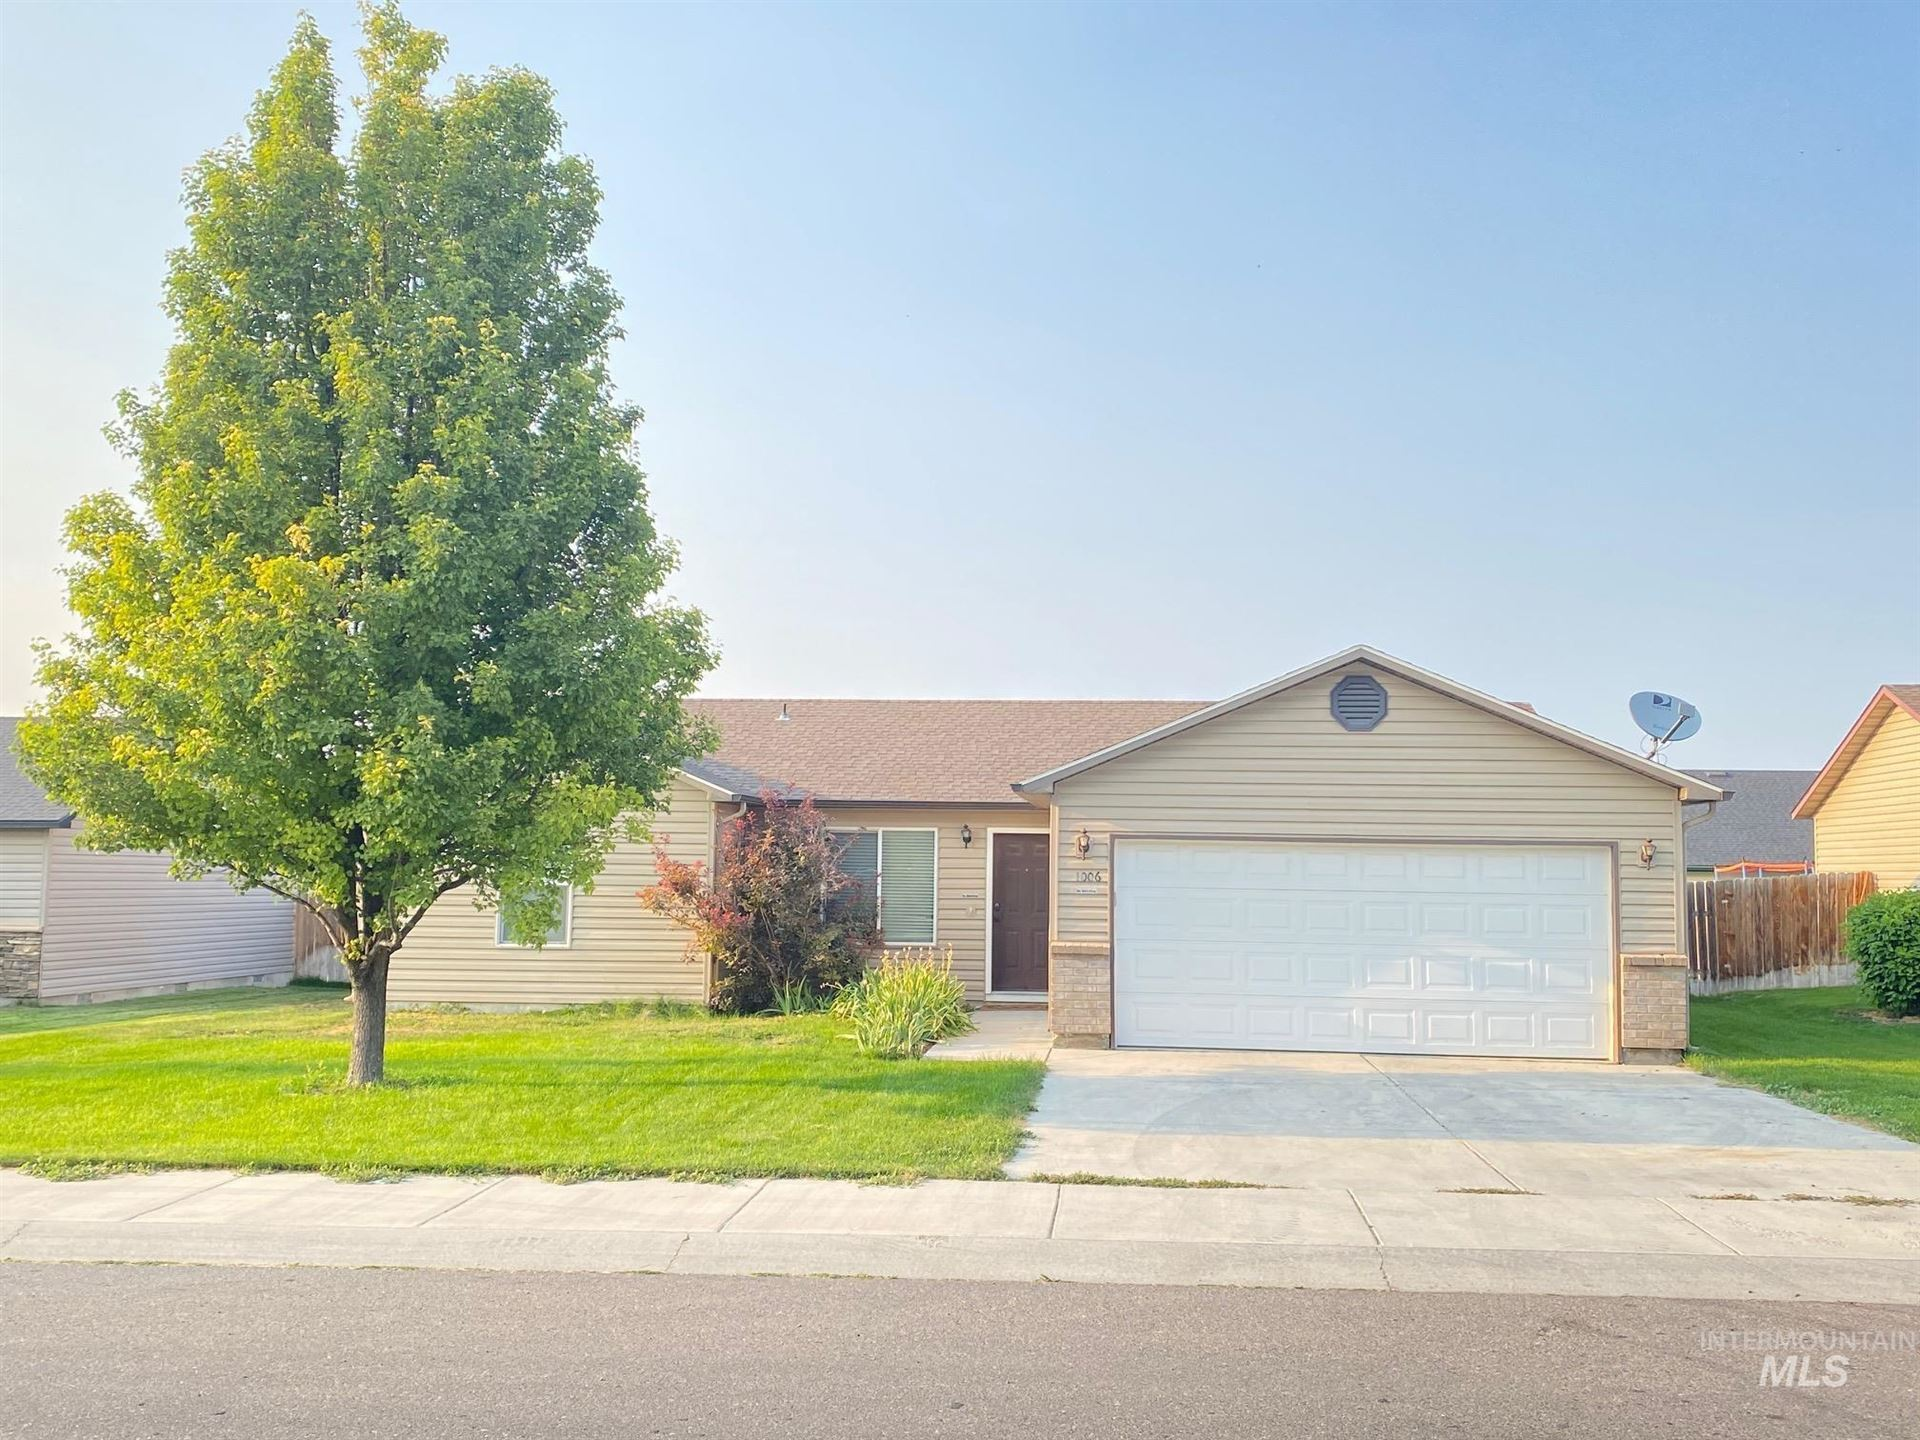 1006 21st Ave E, Jerome, ID 83338 - MLS#: 98821169